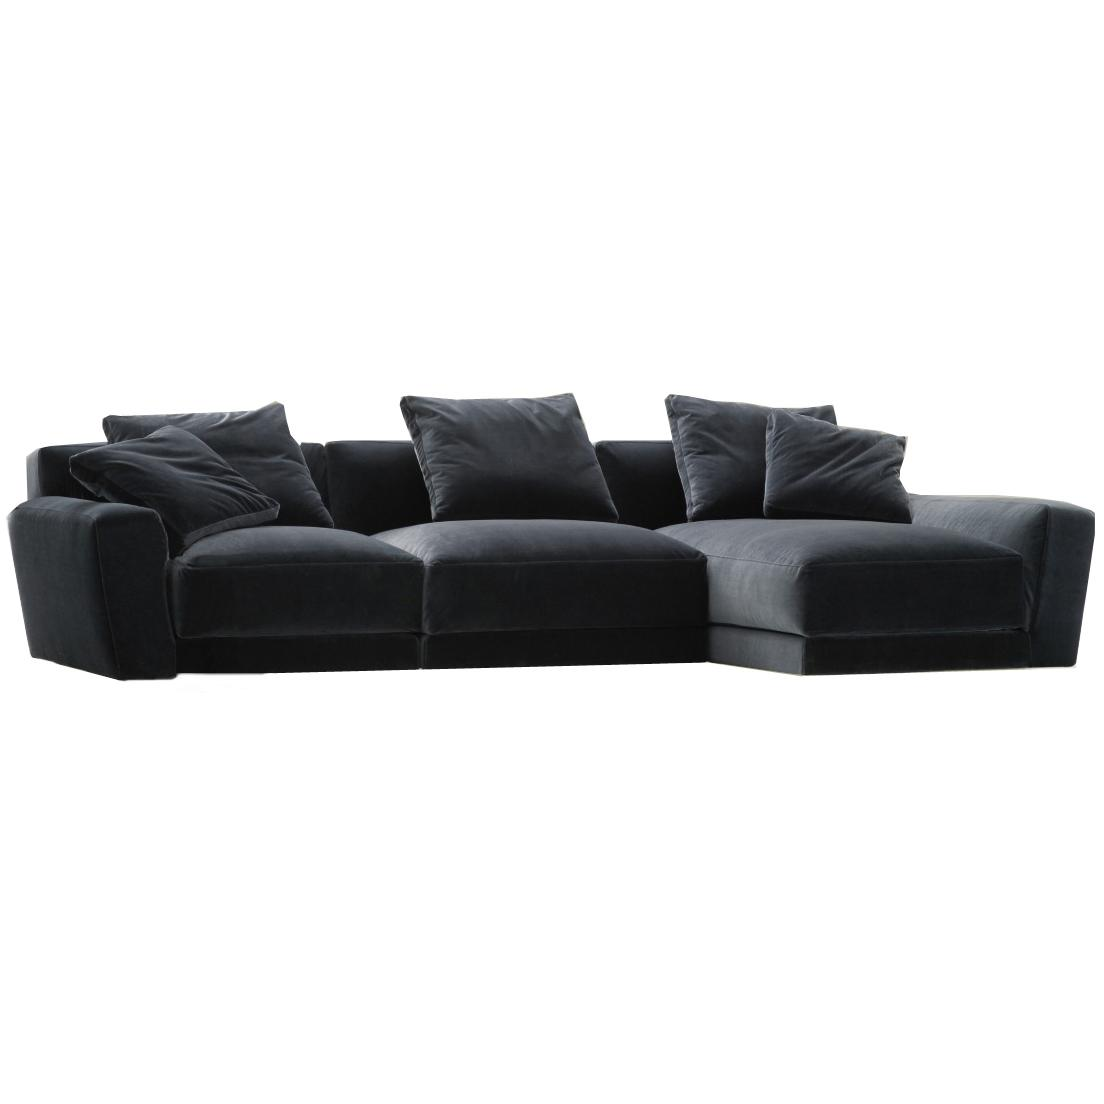 velvet sectional sofa italian leather specialists preston furnished souls